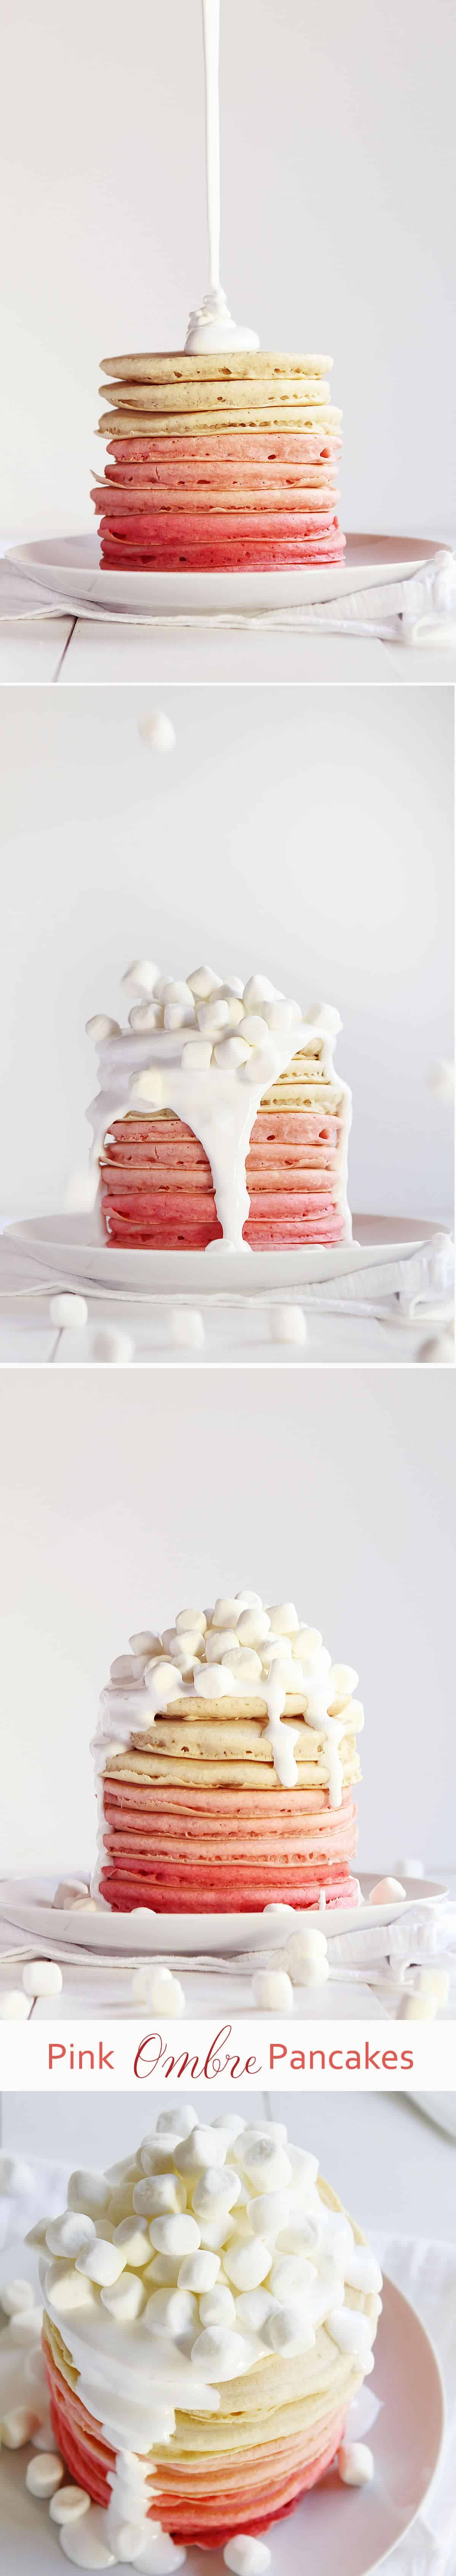 So sweet pink pancakes served with a decadent marshmallow fluff!